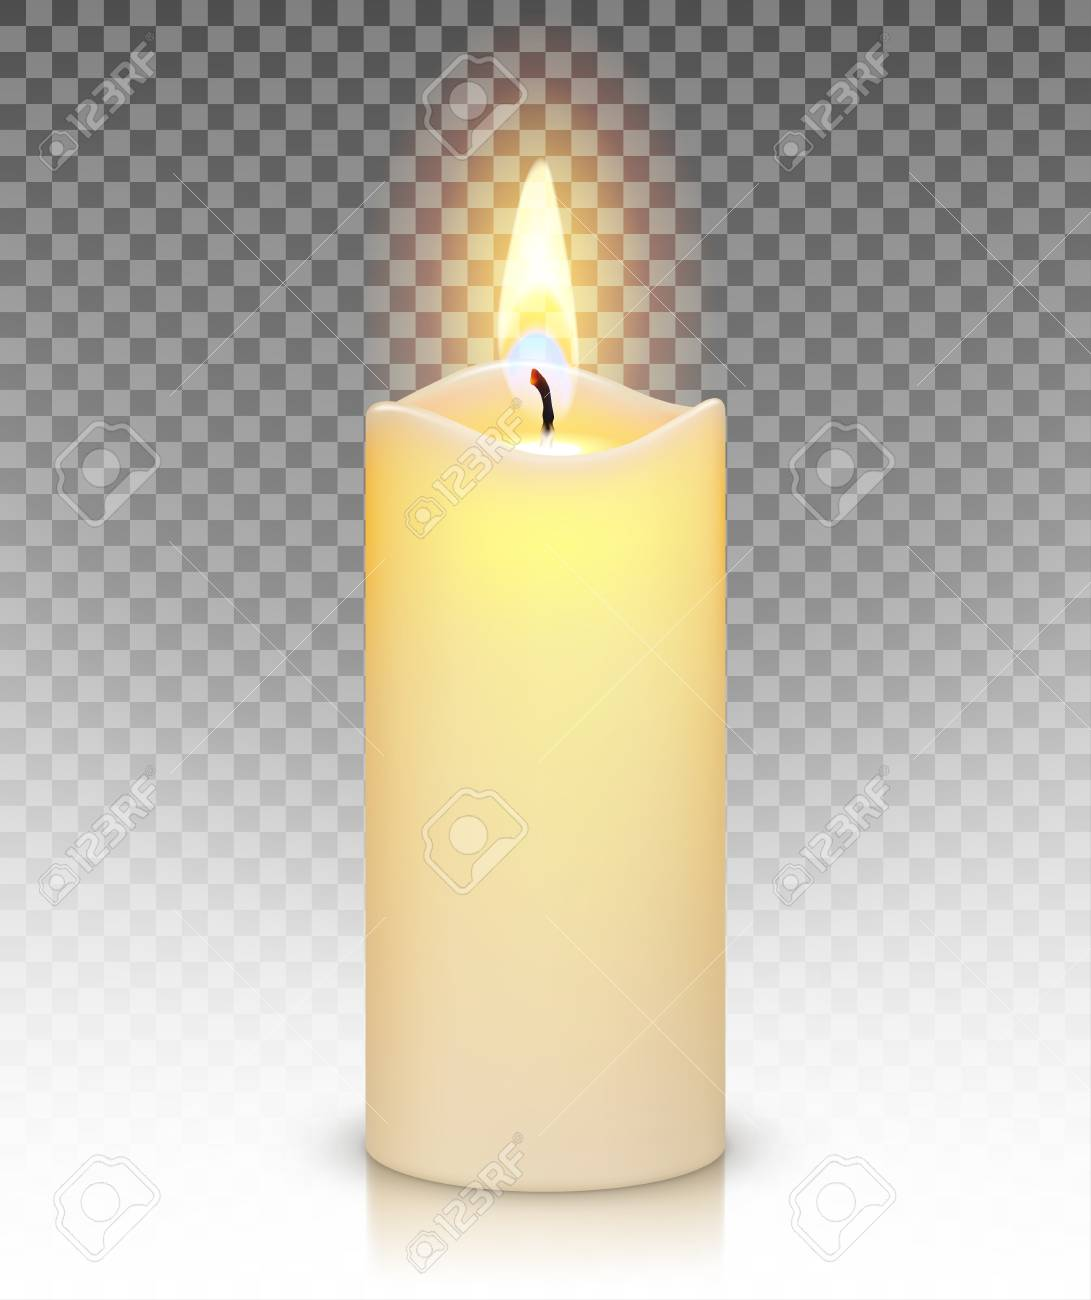 Candle burn with fire realistic isolated on transparent background - 94845942